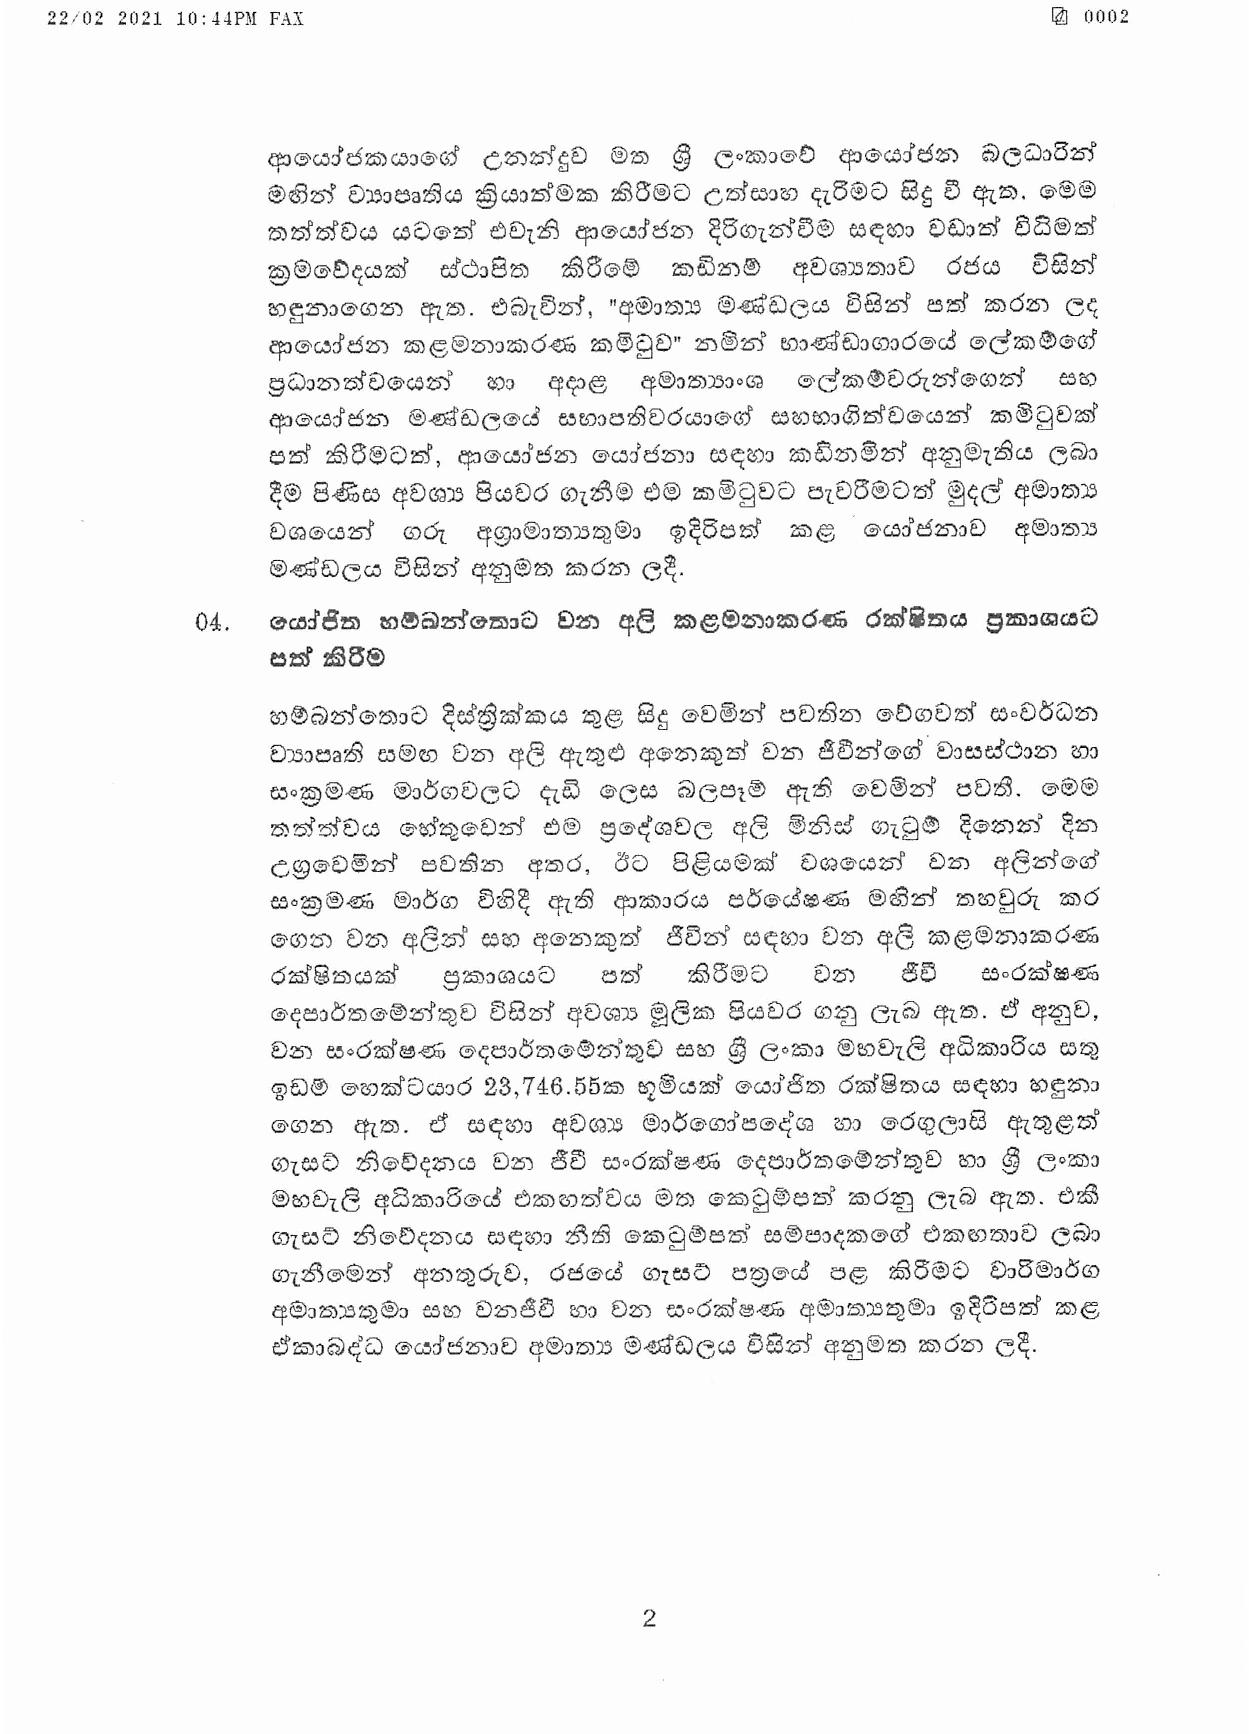 Cabinet Decision on 22.02.2021 page 002